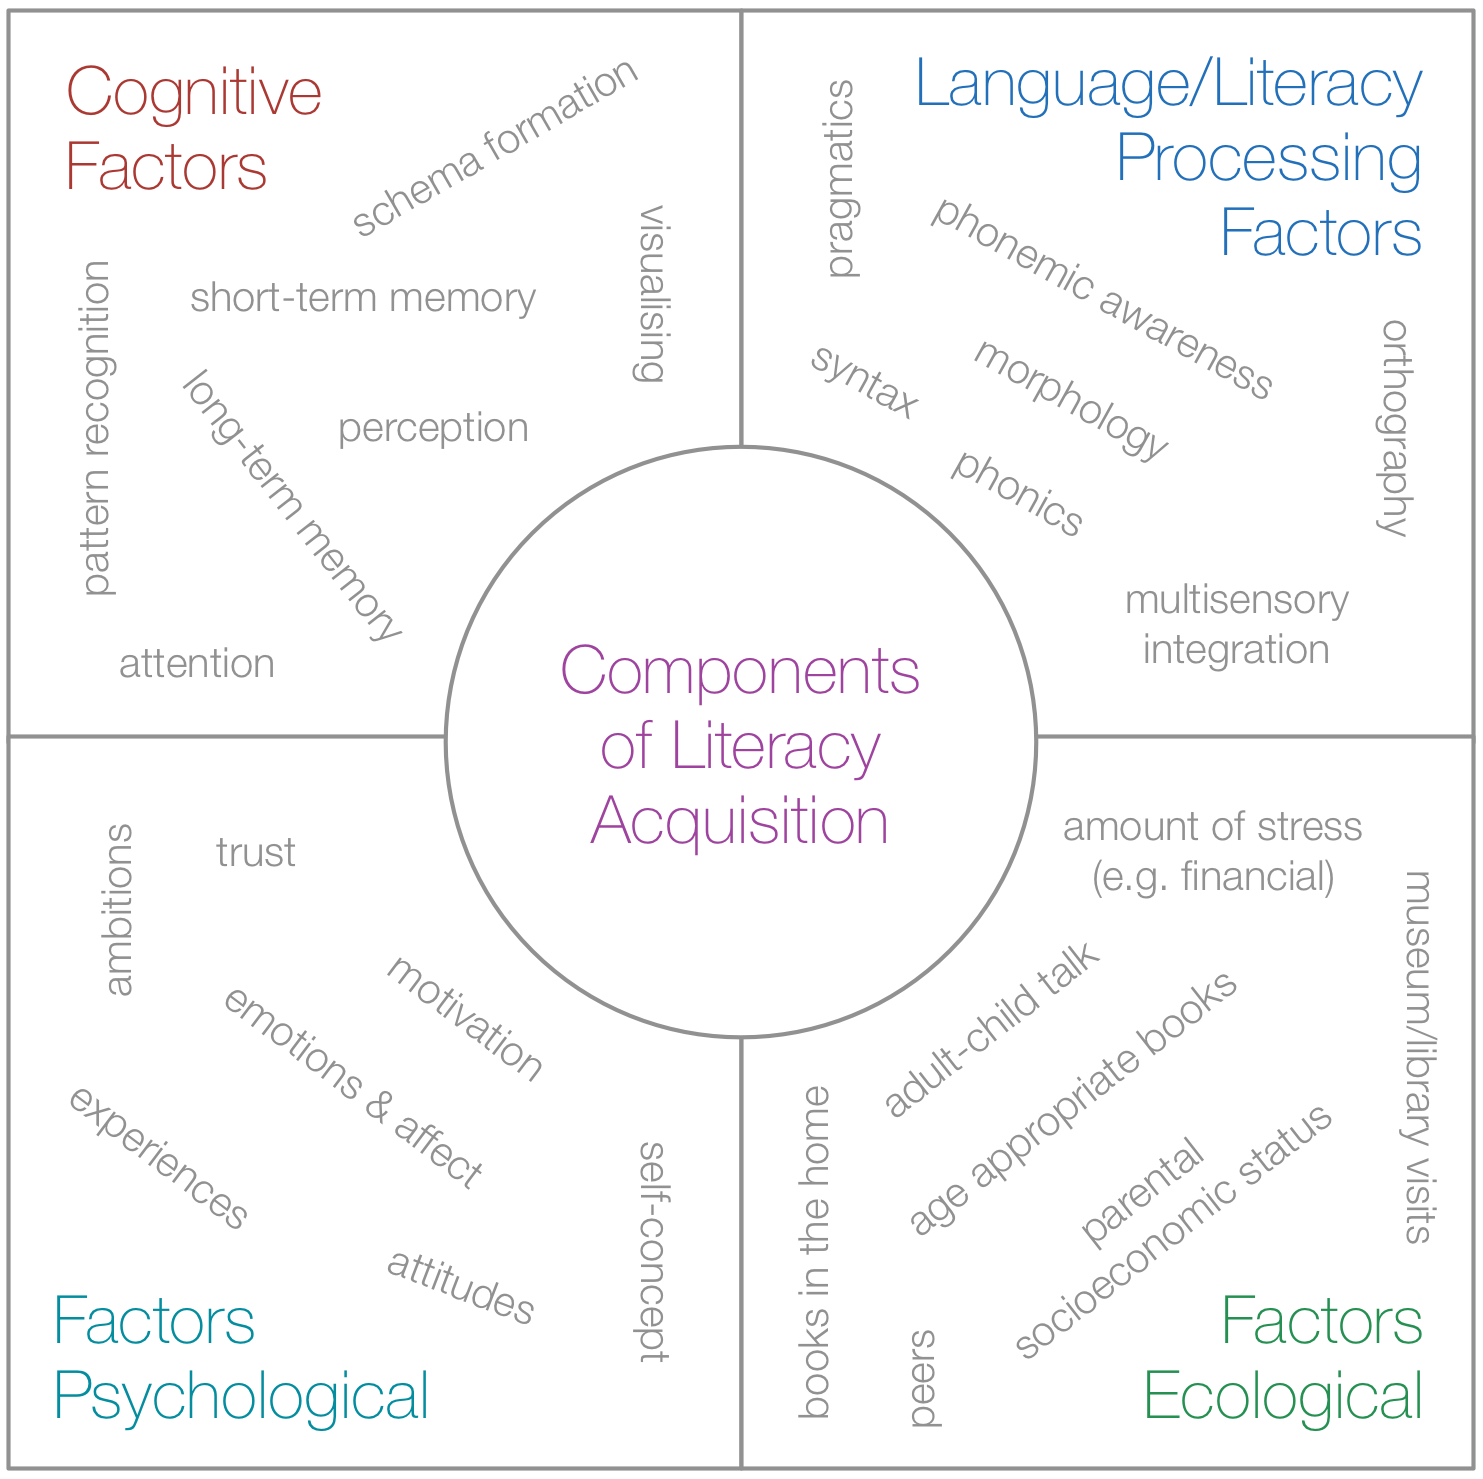 Chiu, M. M., McBride-Chang, C., & Lin, D. (2012). Ecological, psychological, and cognitive components of reading difficulties: Journal of Learning Disabilities, 45(5), 391–405.